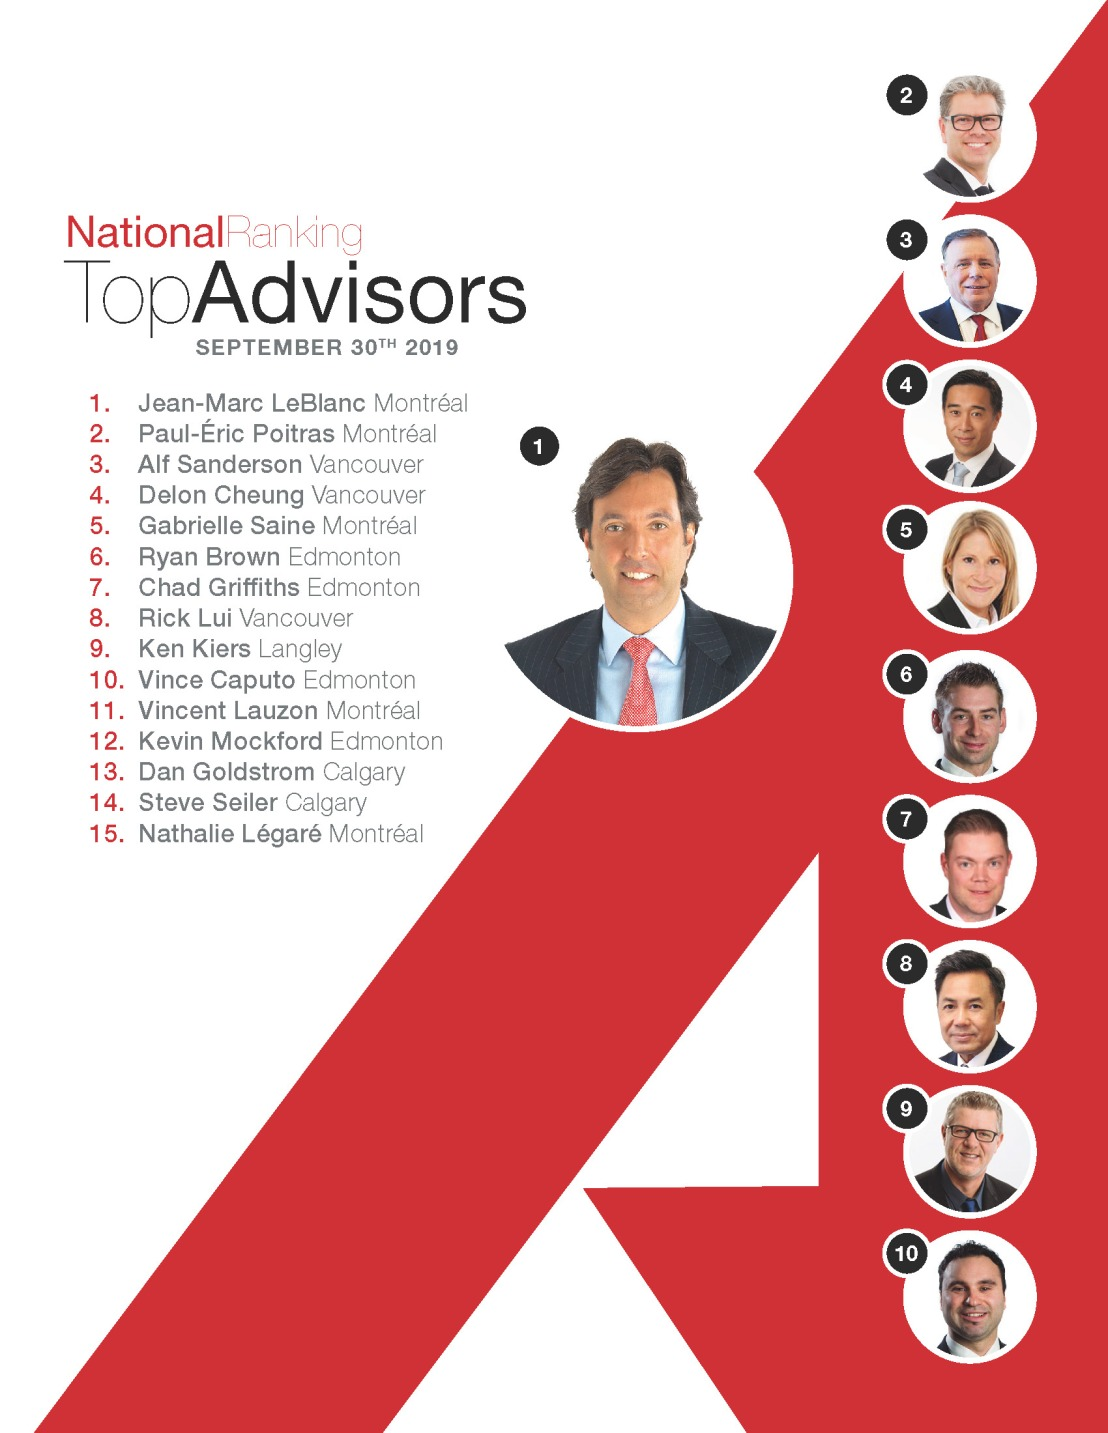 National-Top15Advisors-Sep2019